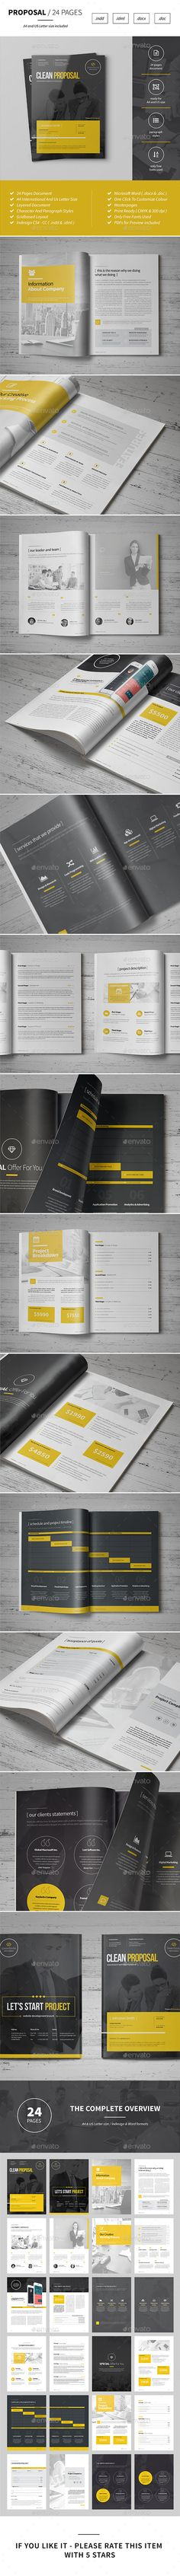 Proposal 25 pages Template InDesign INDD #design Download: http://graphicriver.net/item/proposal/14455728?ref=ksioks